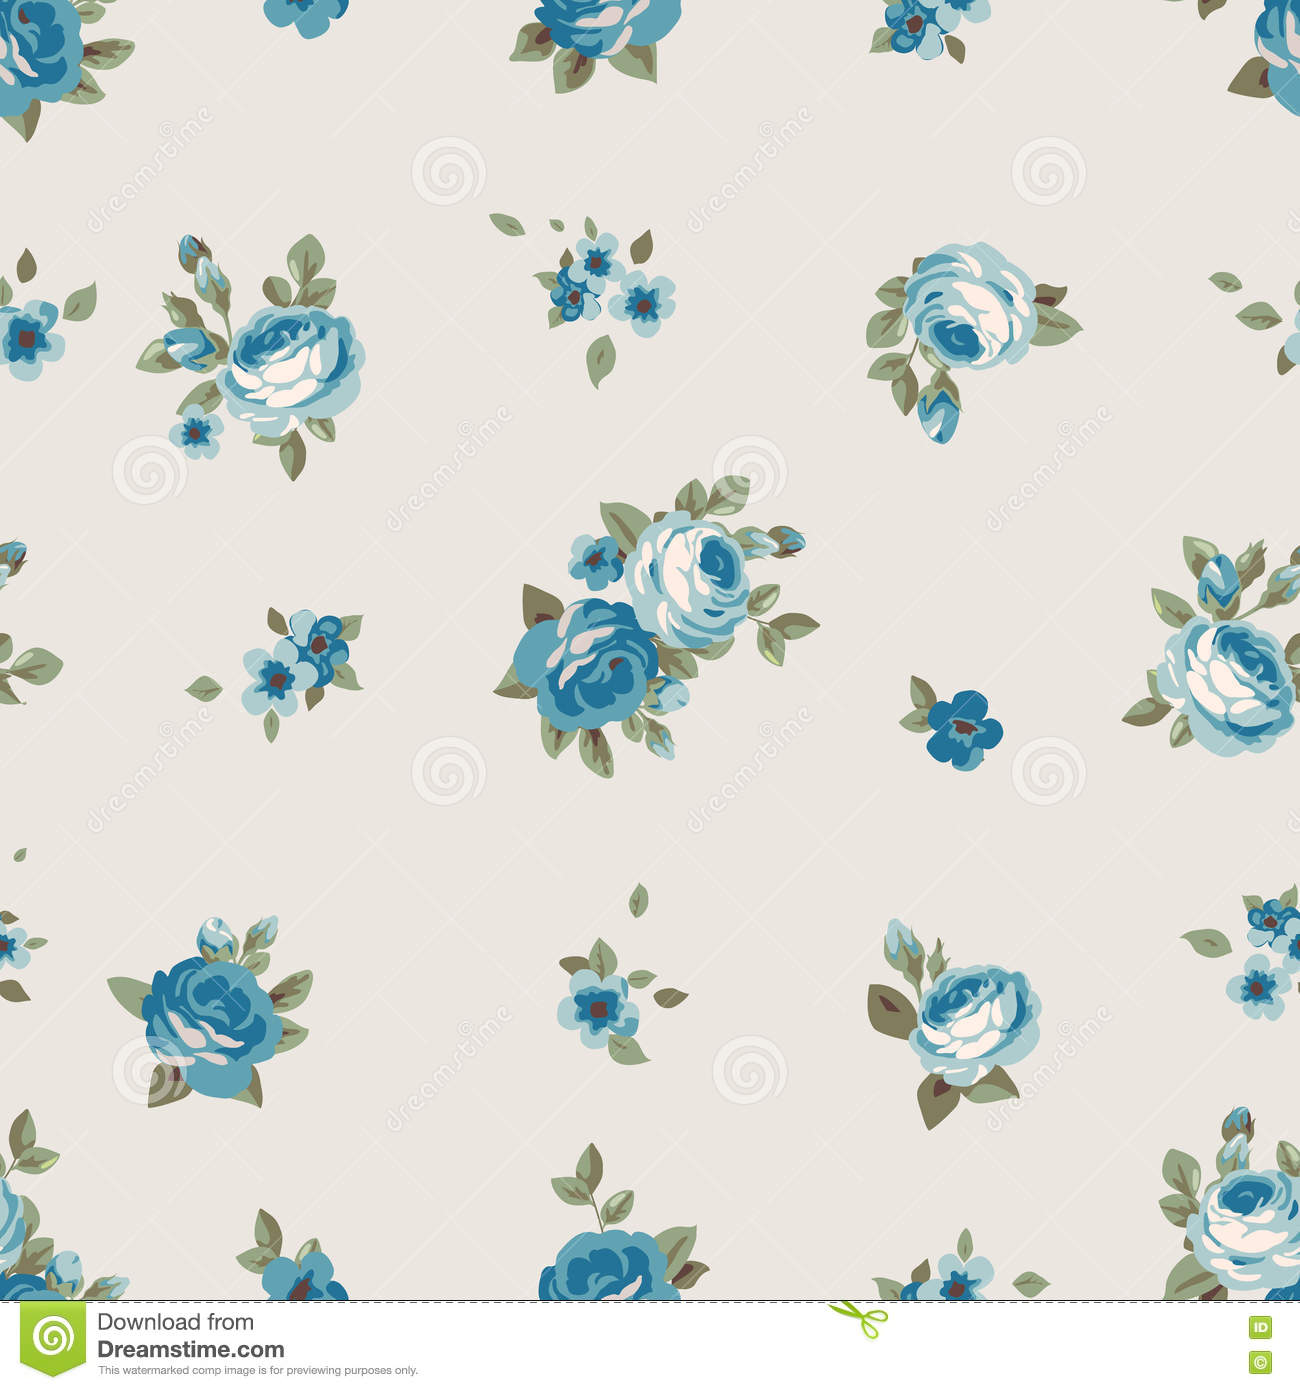 Seamless Pattern With Blue Flowers Vintage Floral Wallpaper With